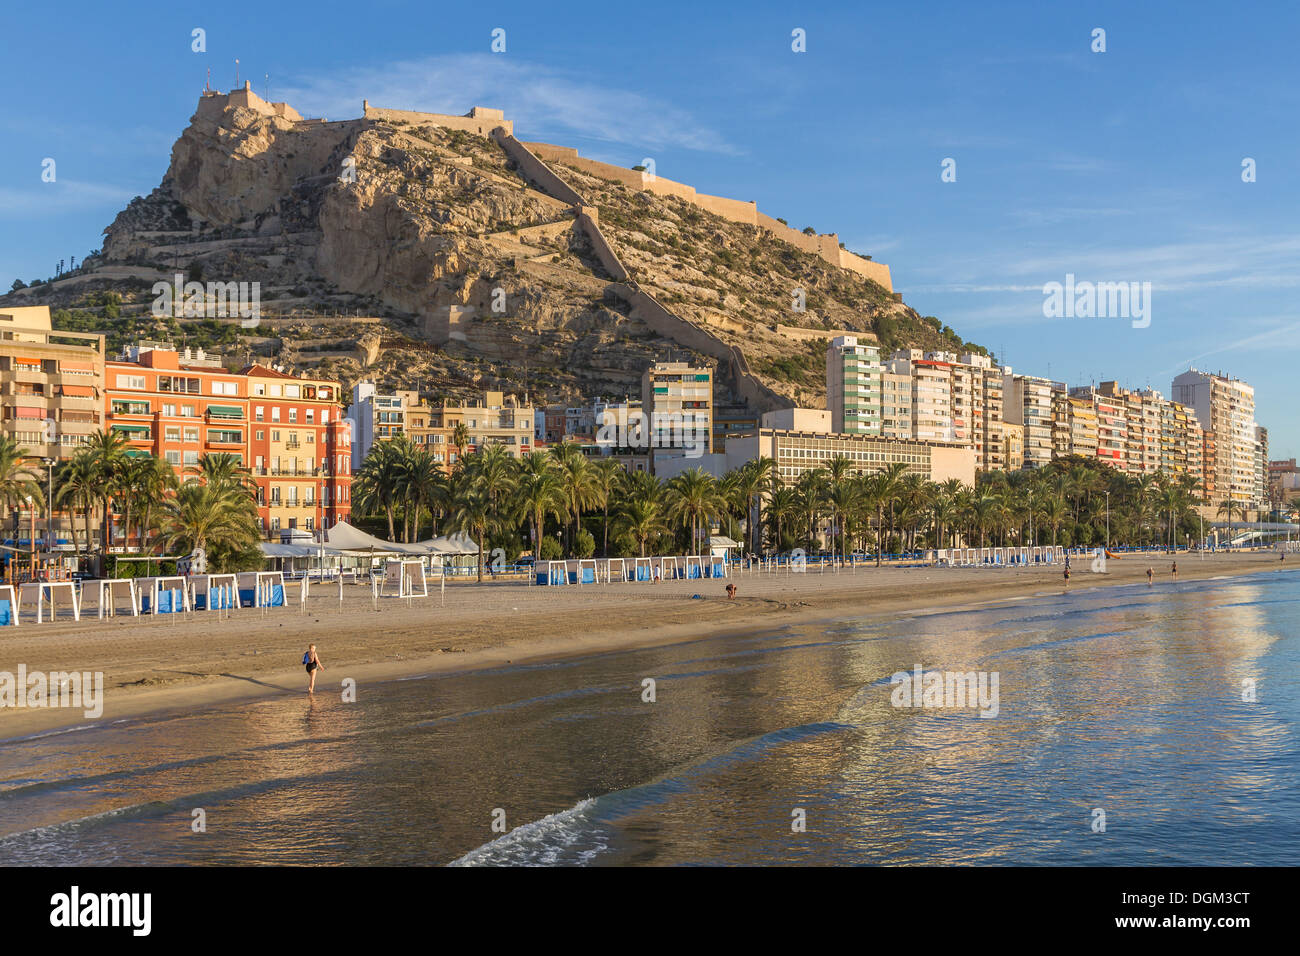 Spain alicante beach santa barbara castle stock photo - Stock uno alicante ...